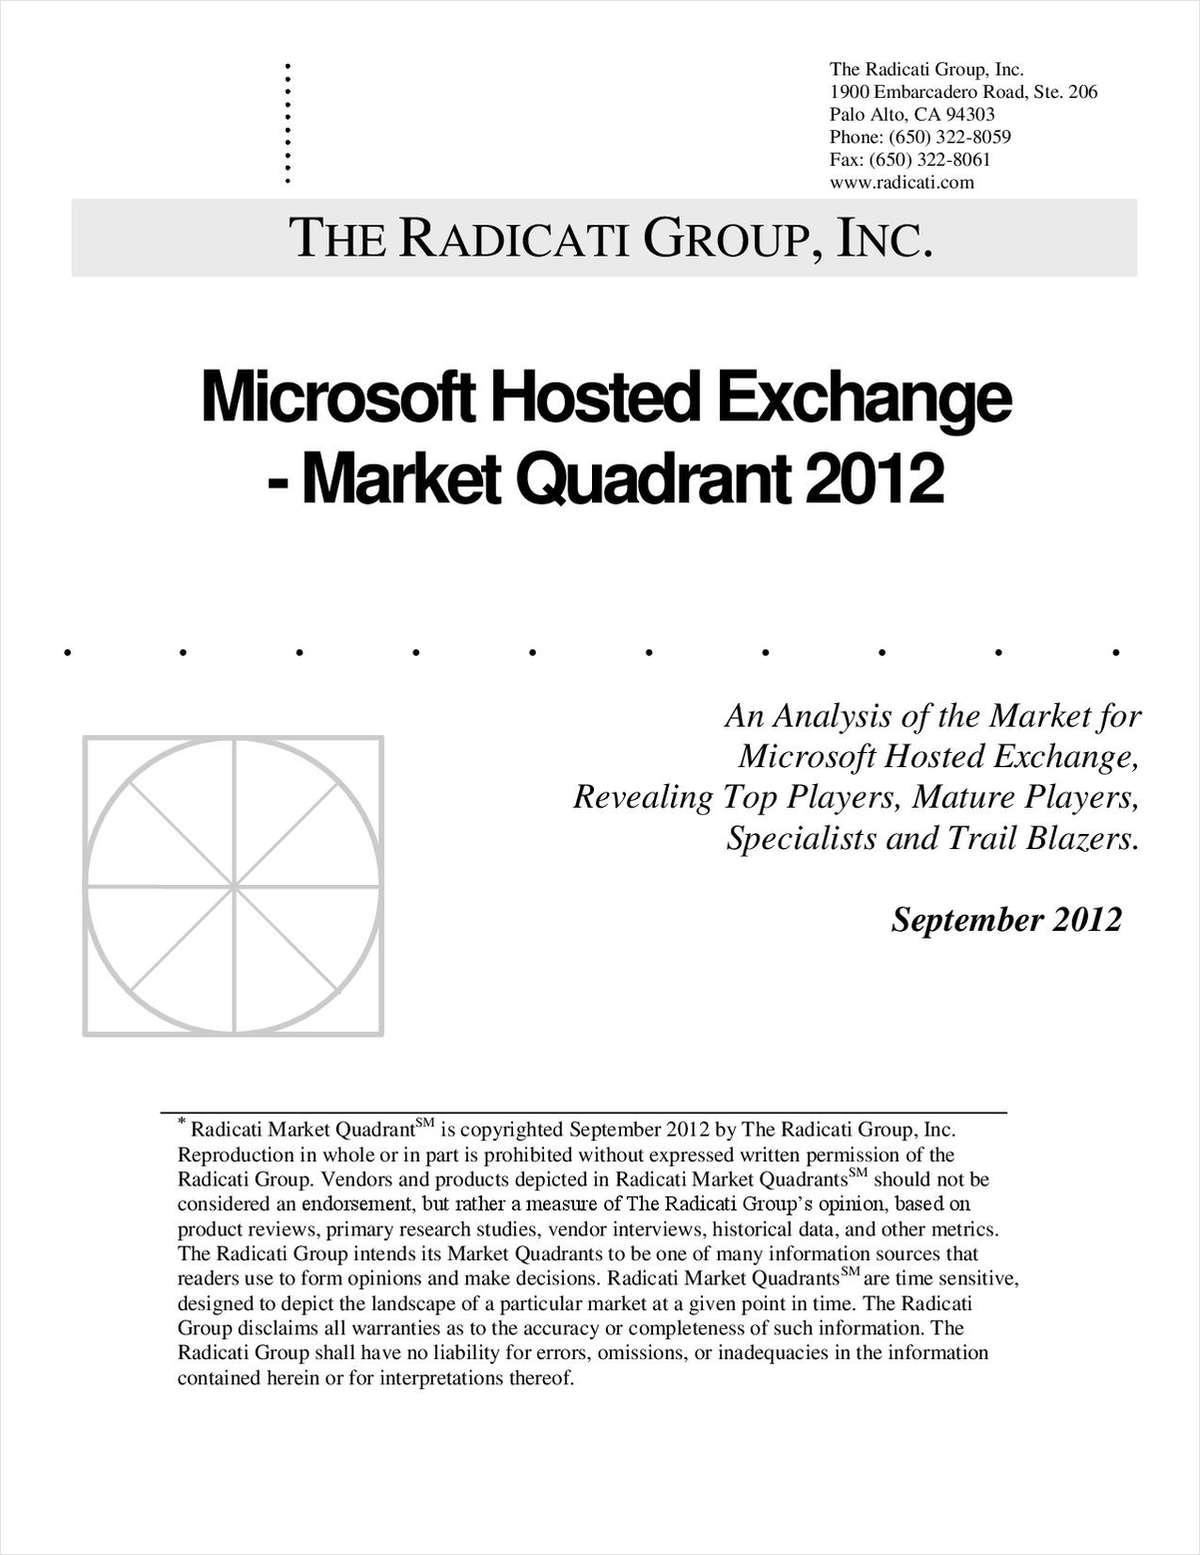 Microsoft Hosted Exchange Market Quadrant